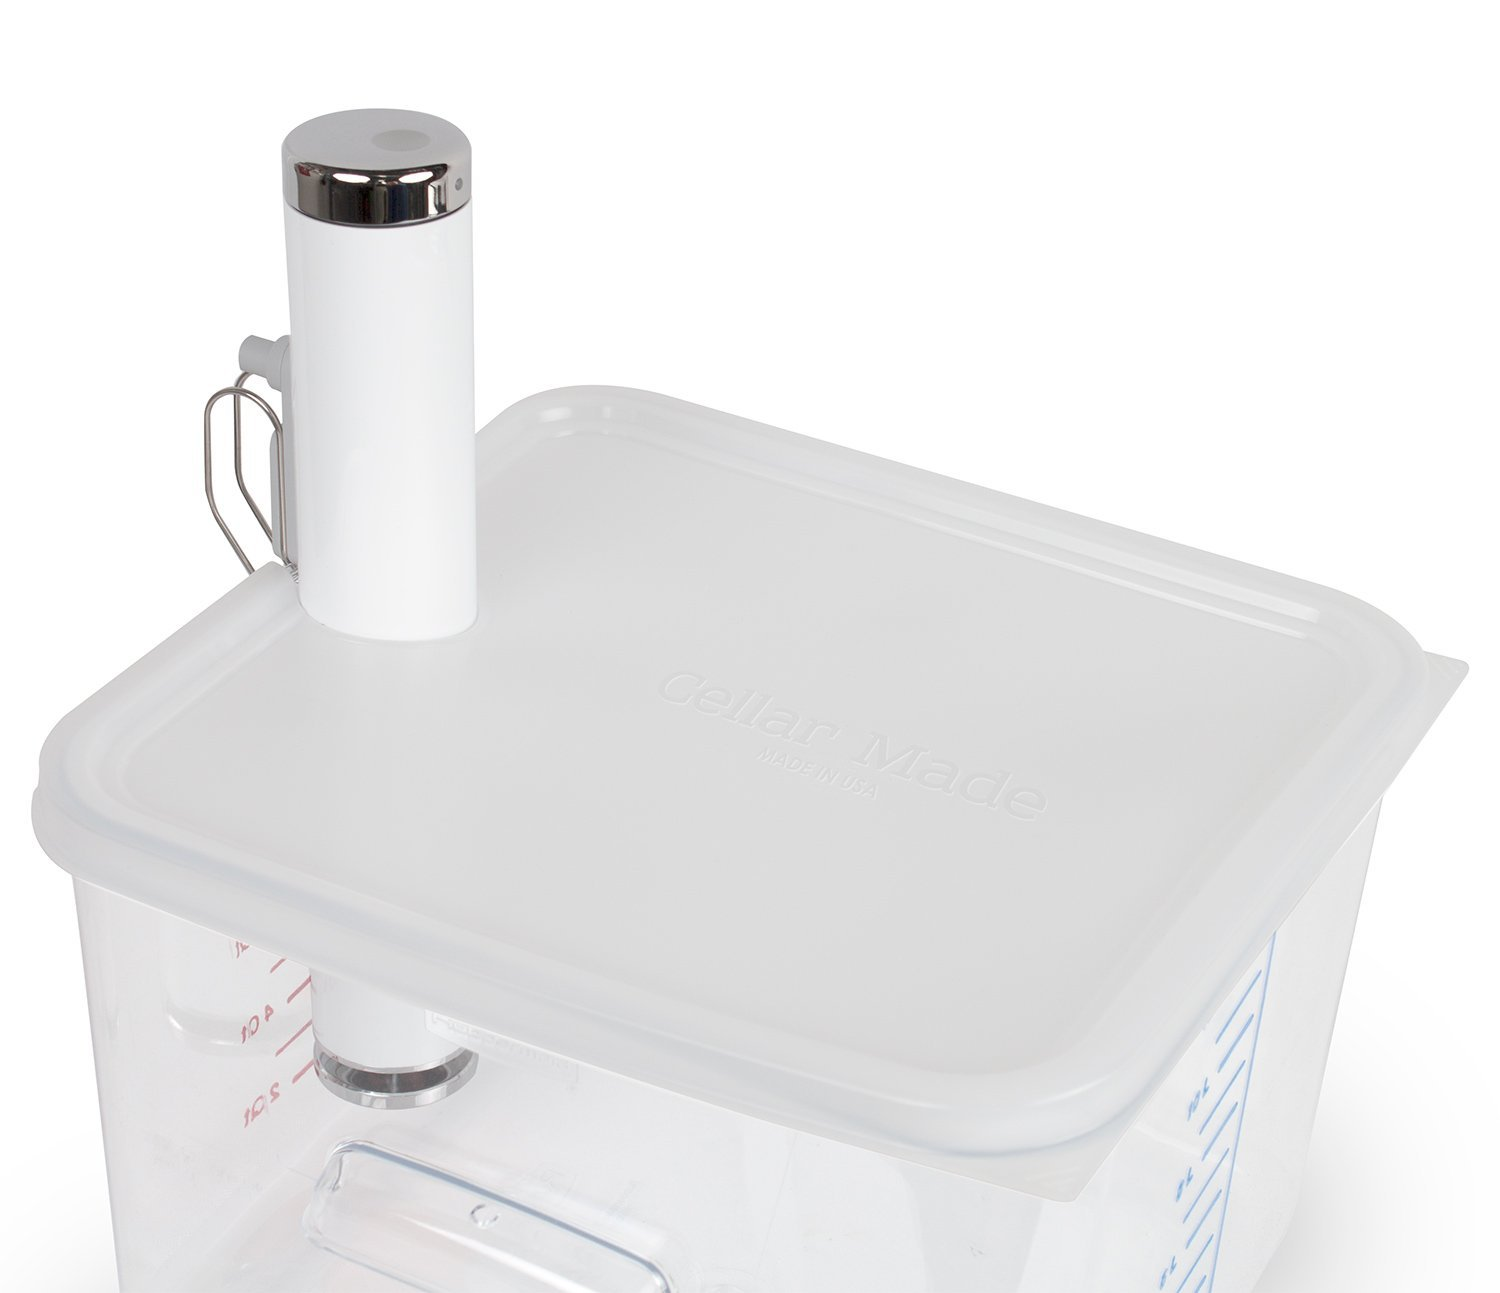 Cellar Made Sous Vide Lid for ChefSteps Joule fits 12, 18 & 22 Quart Rubbermaid Containers 6523J